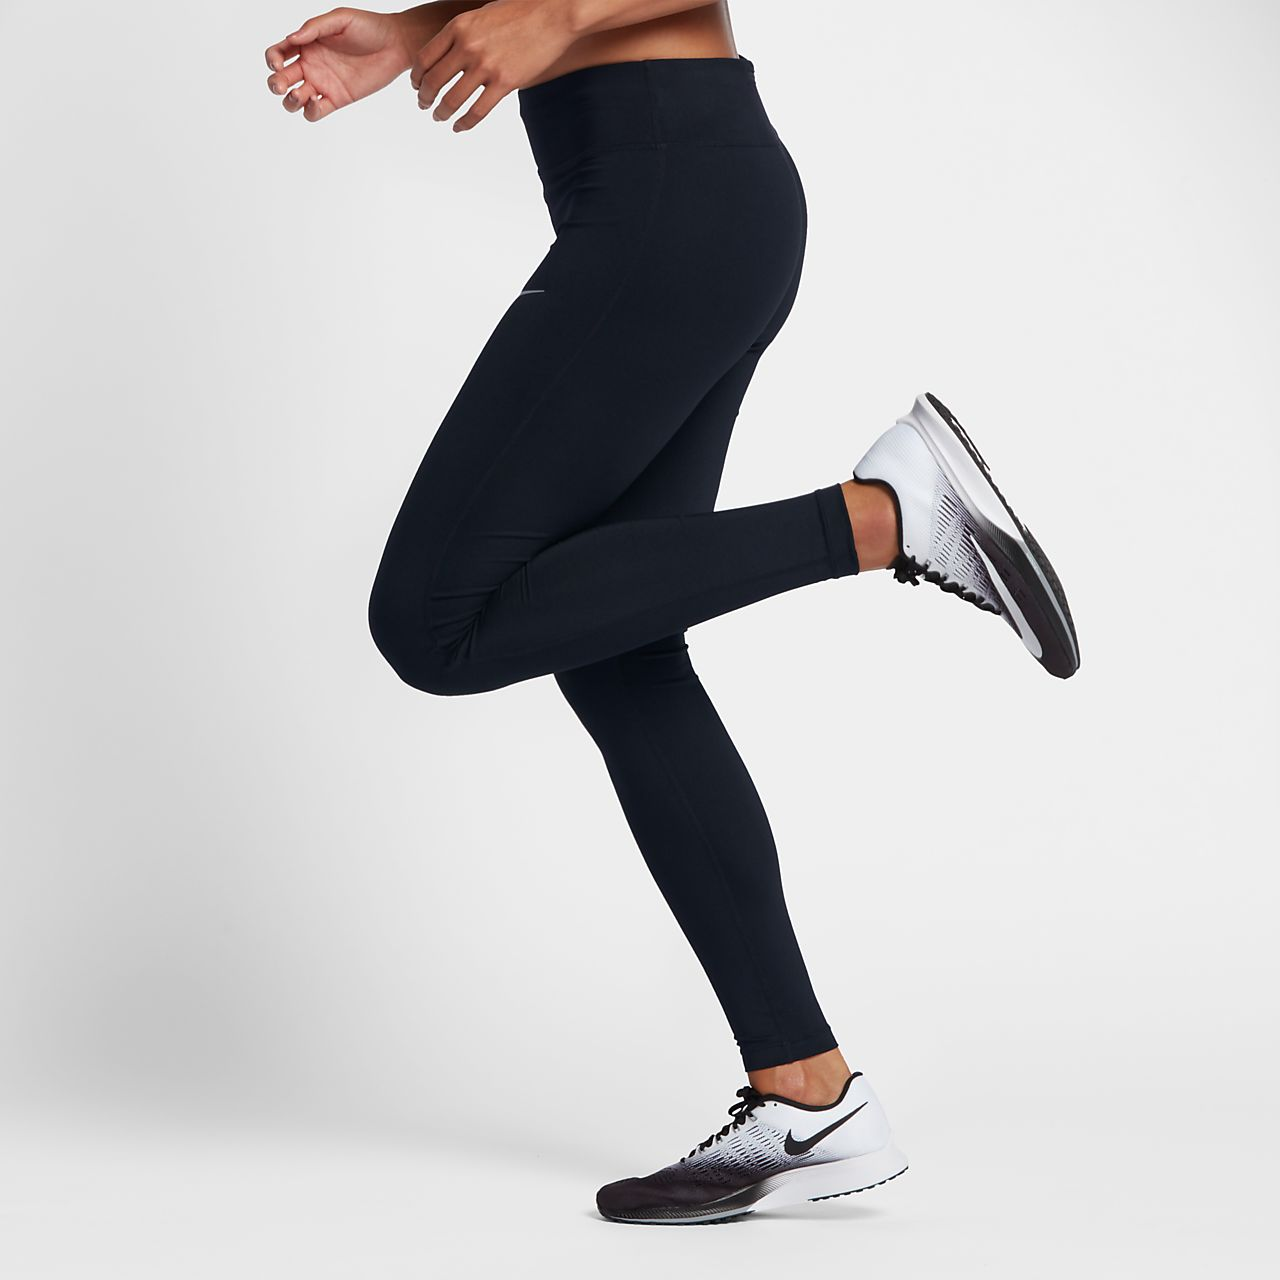 6f881516614 Nike Essential Women s Mid-Rise Running Tights. Nike.com GB